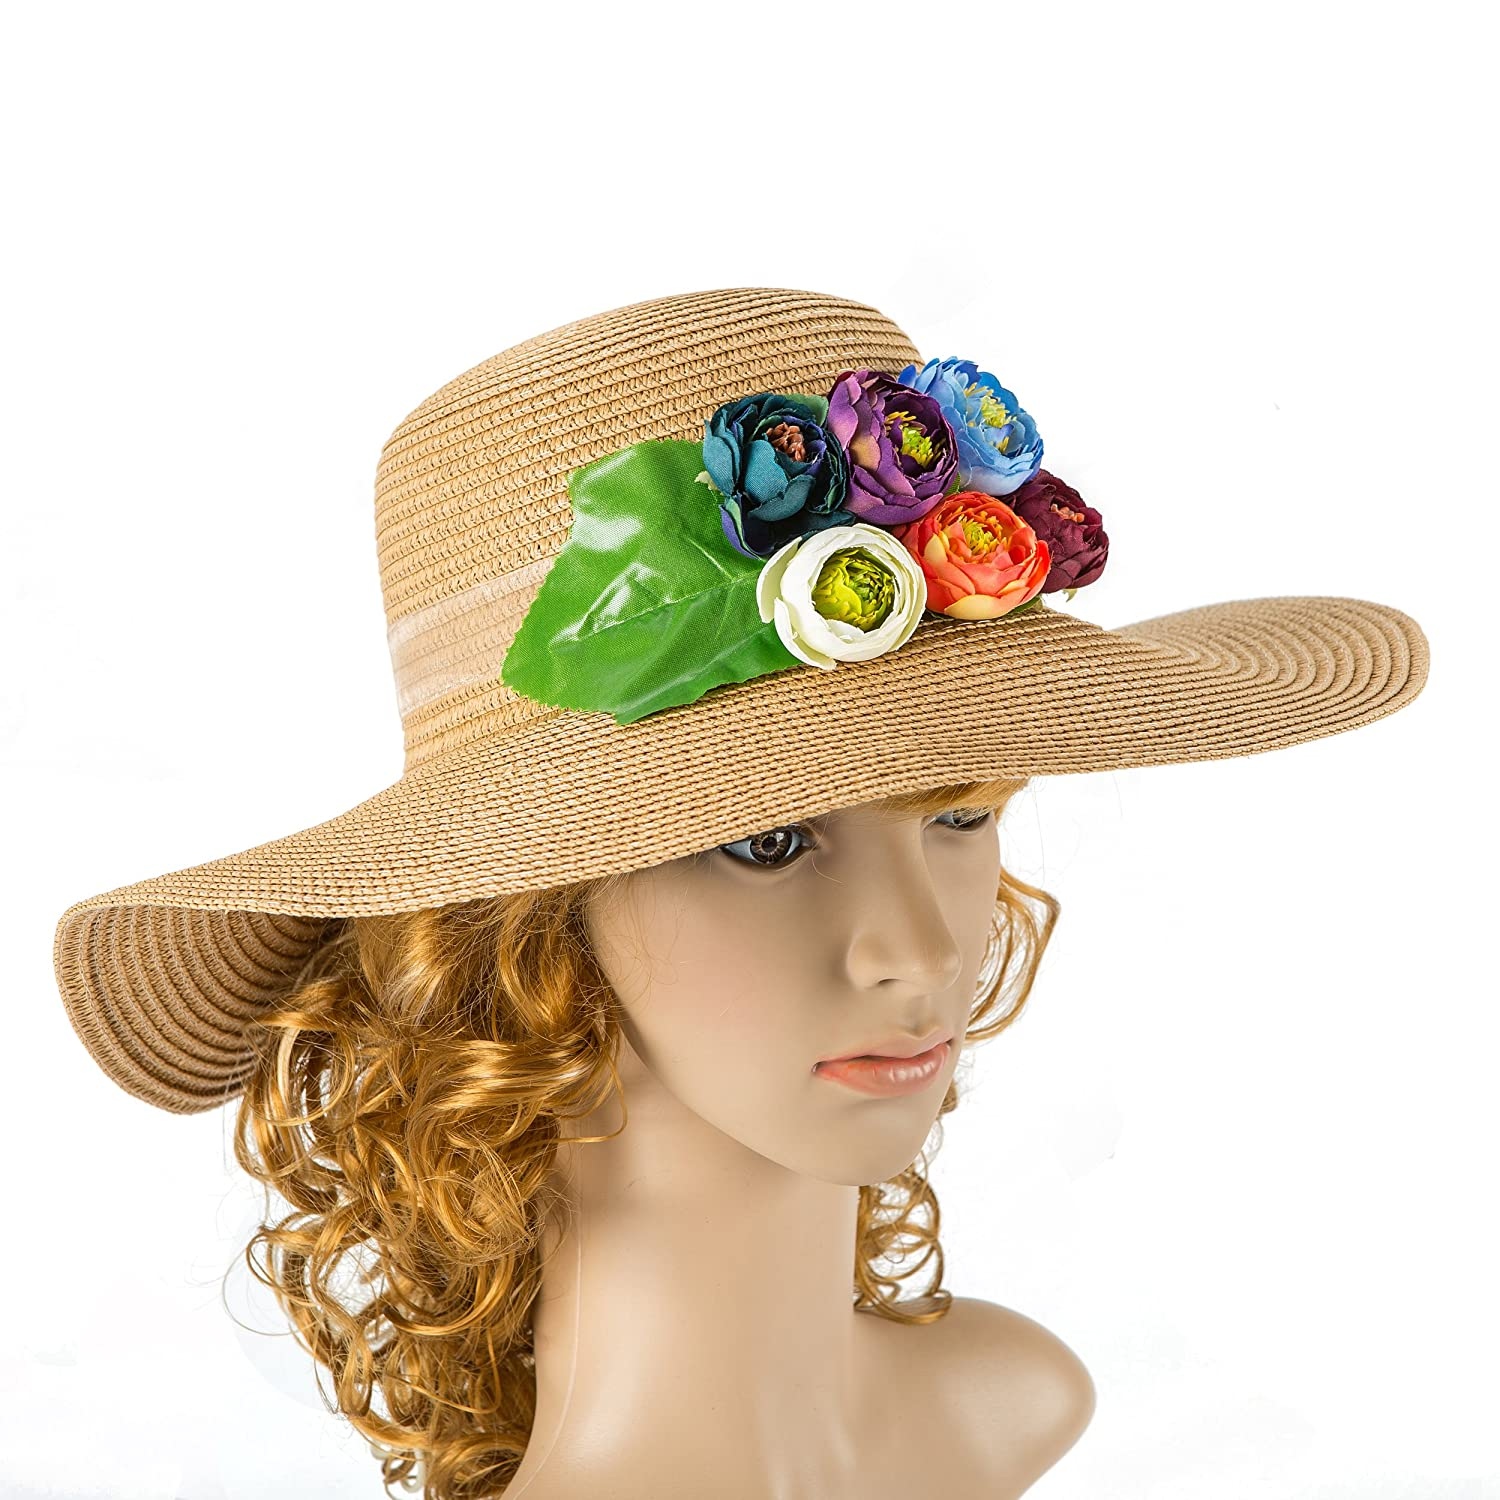 The personalized straw beach hat will make that destination wedding and  honeymoon special. Perfect for your beach getaway b447ce263618